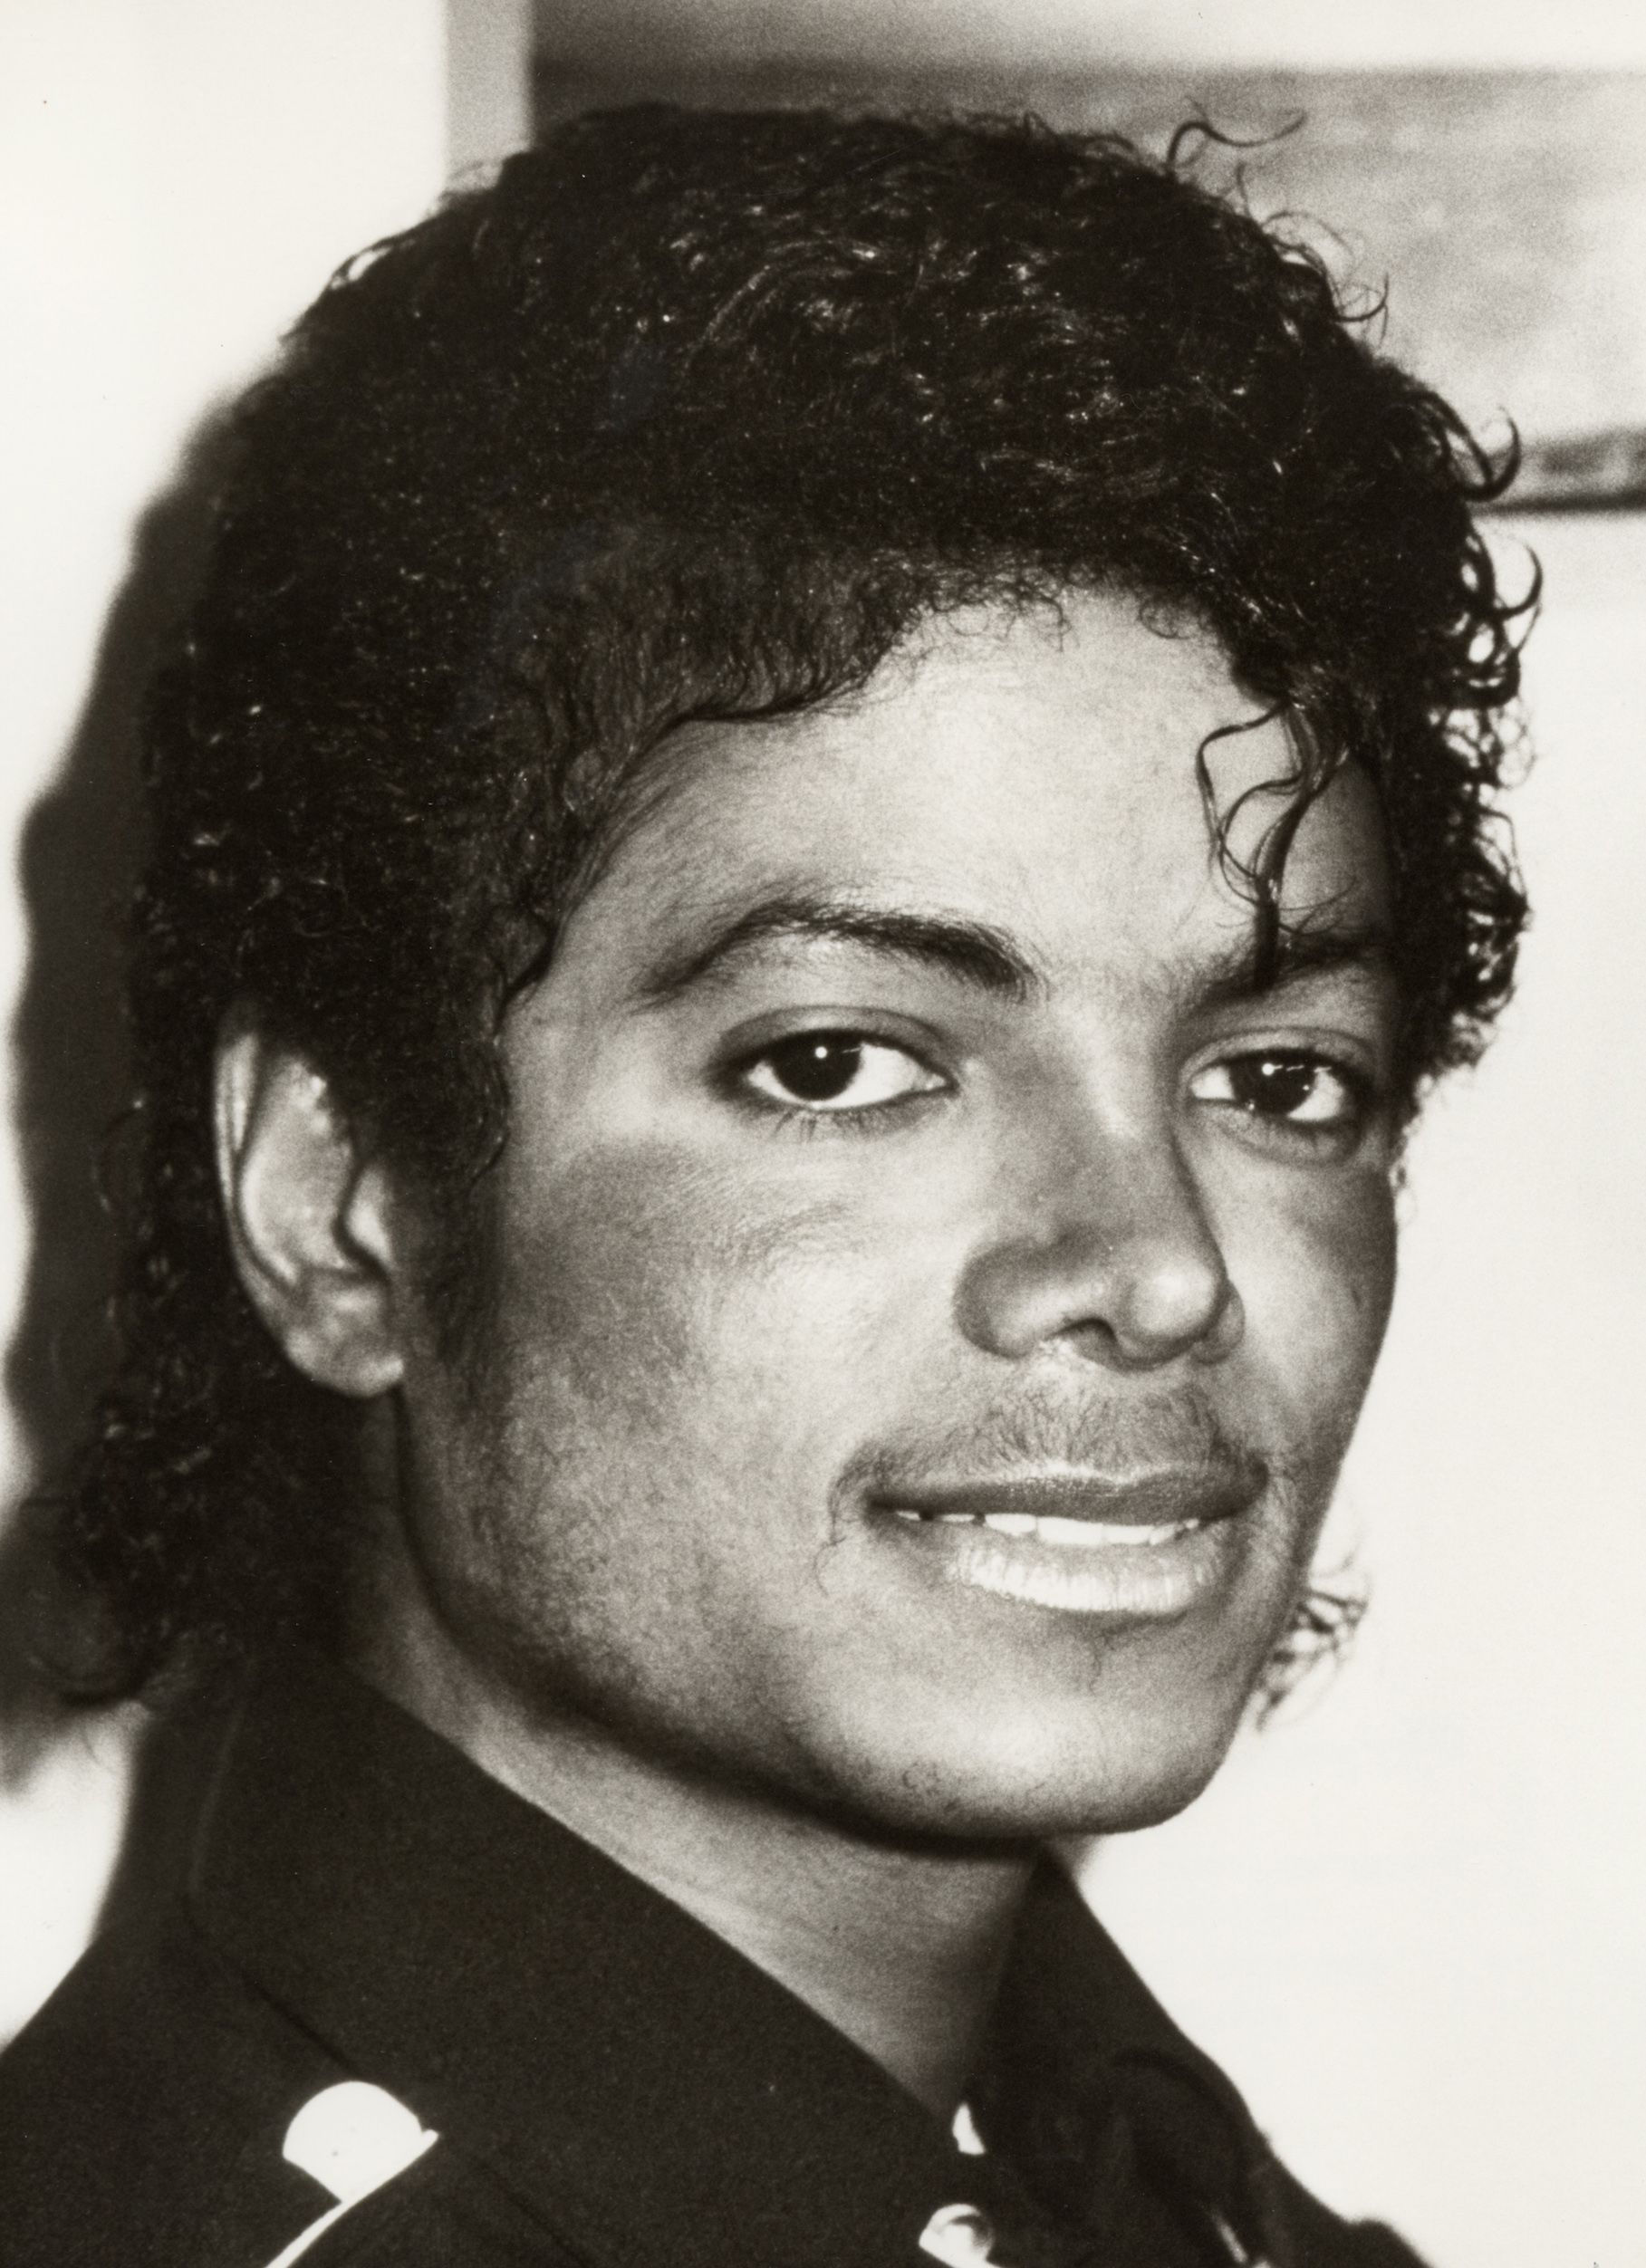 """""""When People's Mind's are clouded with Anger or Hatred , No Angel Can Reach Them """" ------- MJ"""